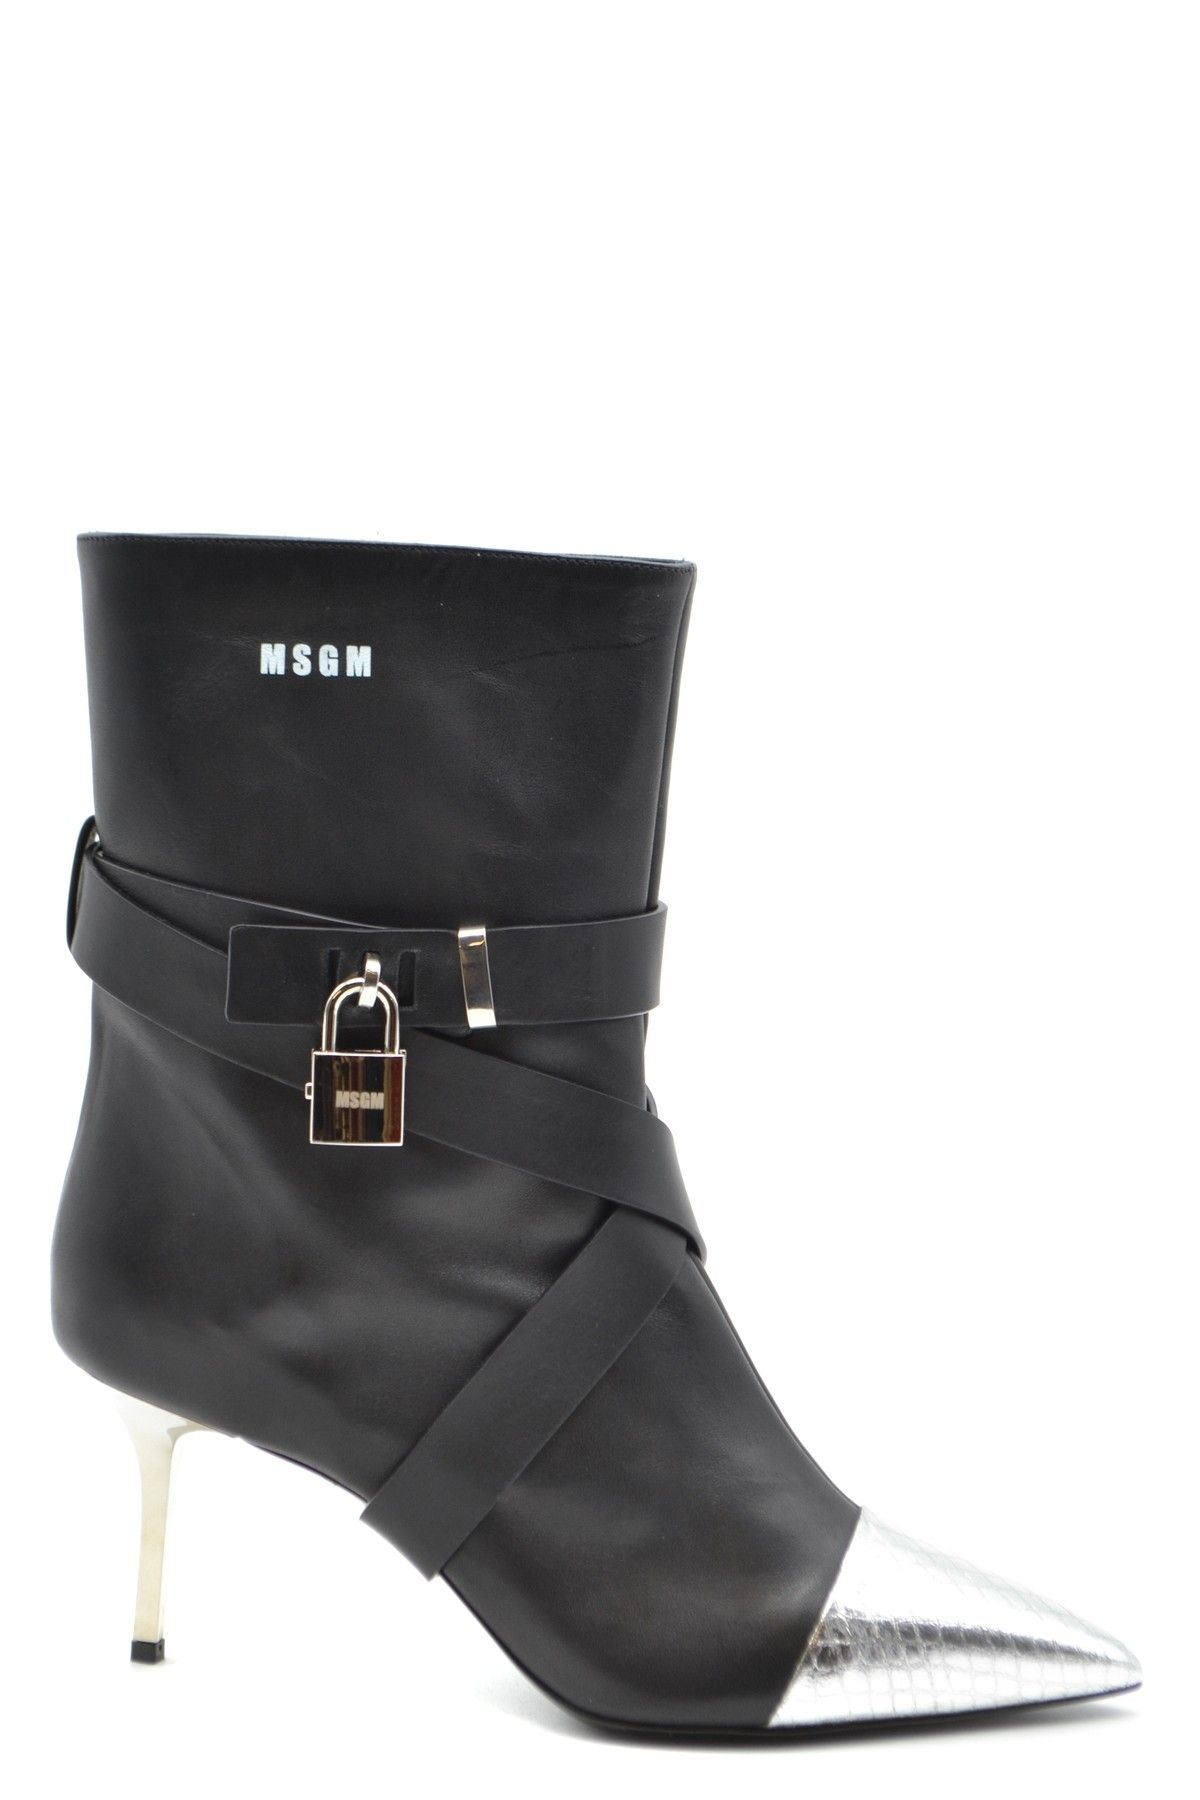 Msgm Women's Boots In Black